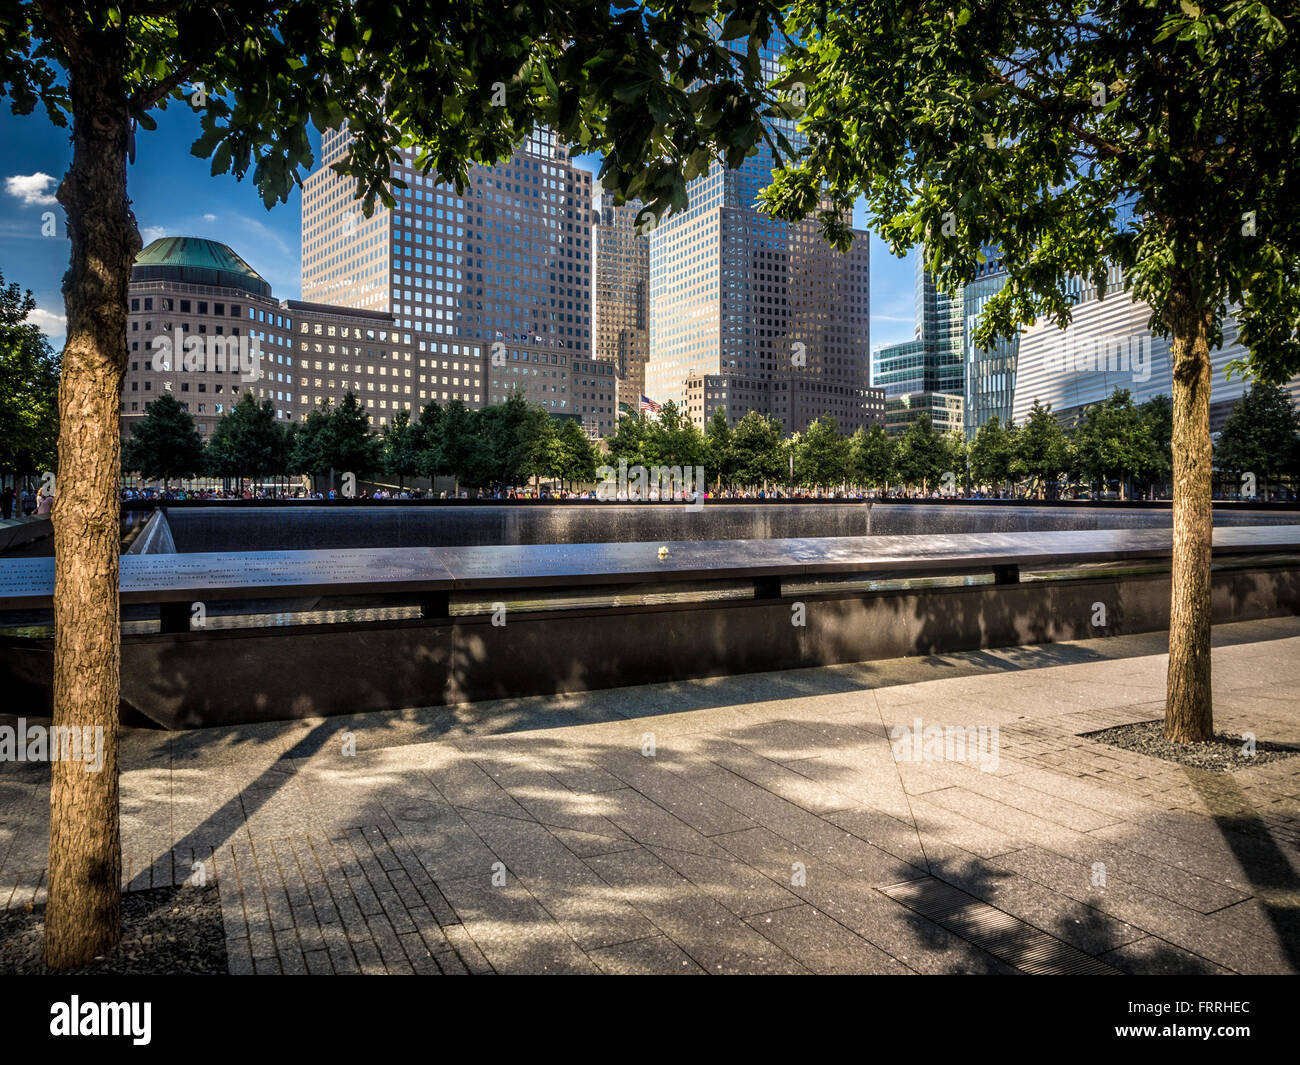 9/11 memorial, New York, USA - Stock Image